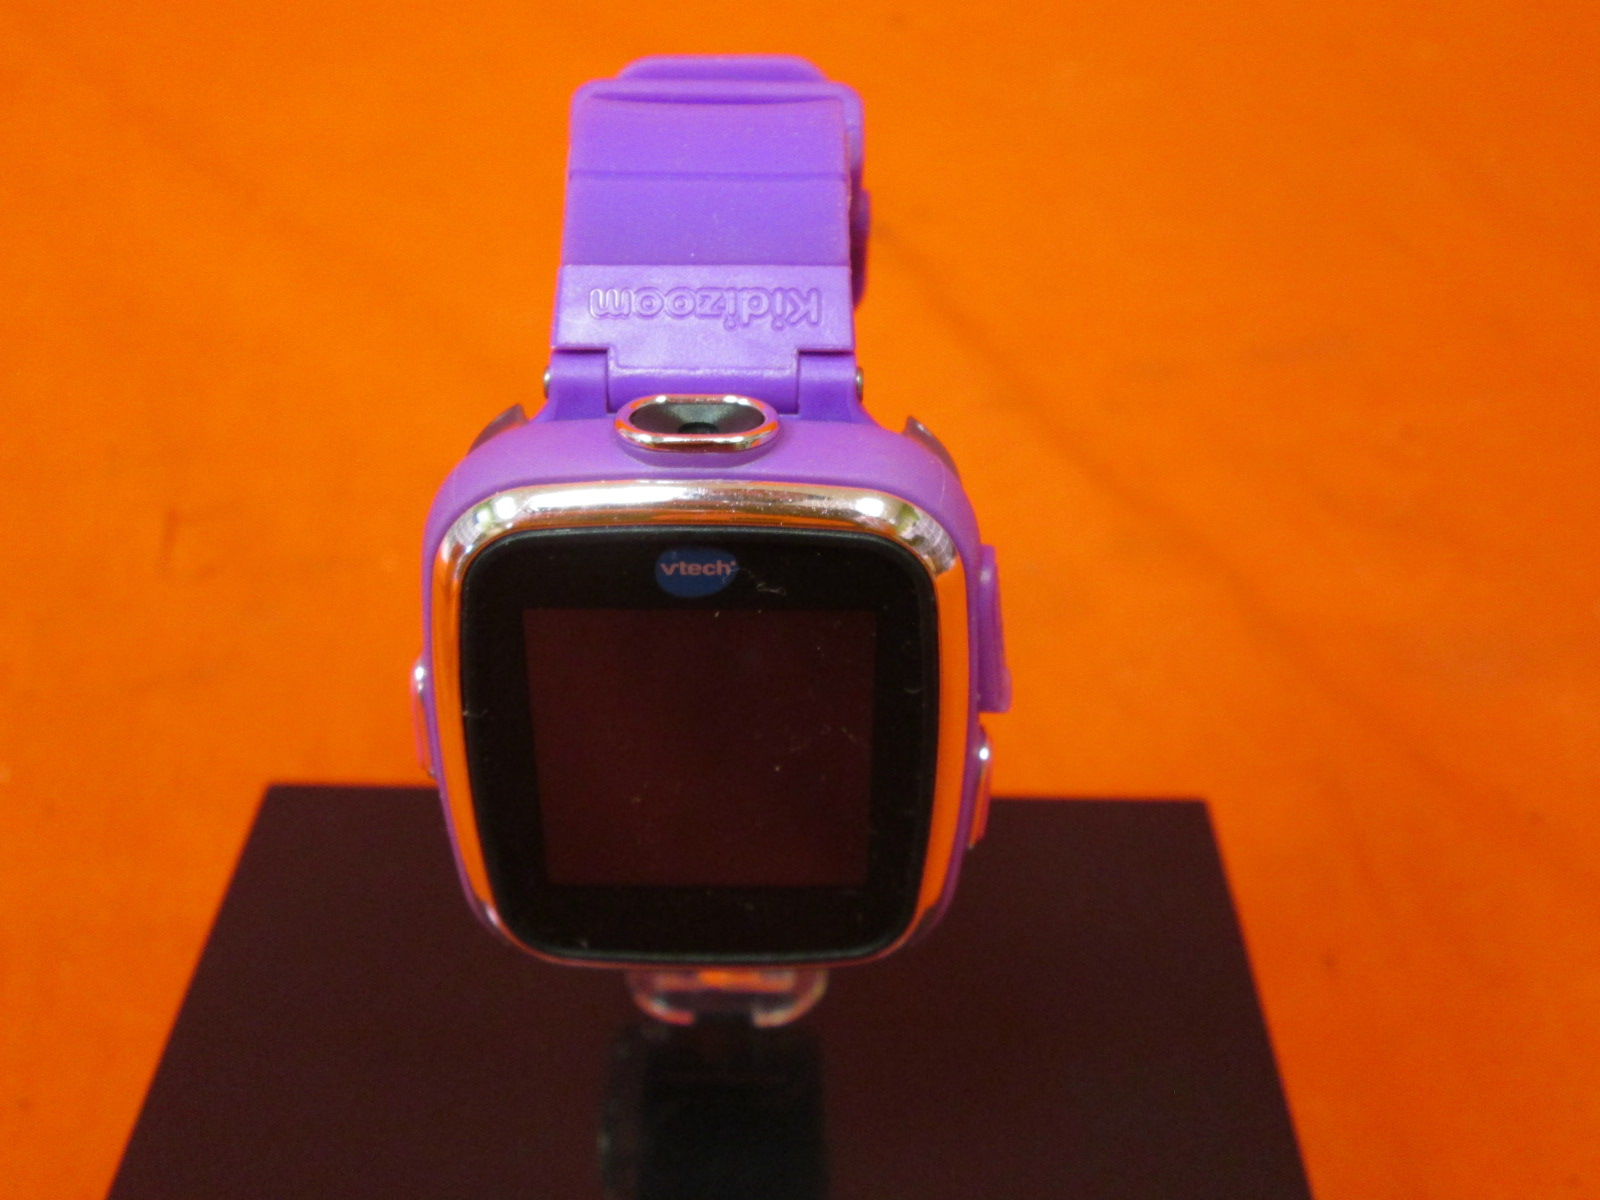 Vtech Kidizoom Kids Smartwatch DX Vivid Violet Toy Watch